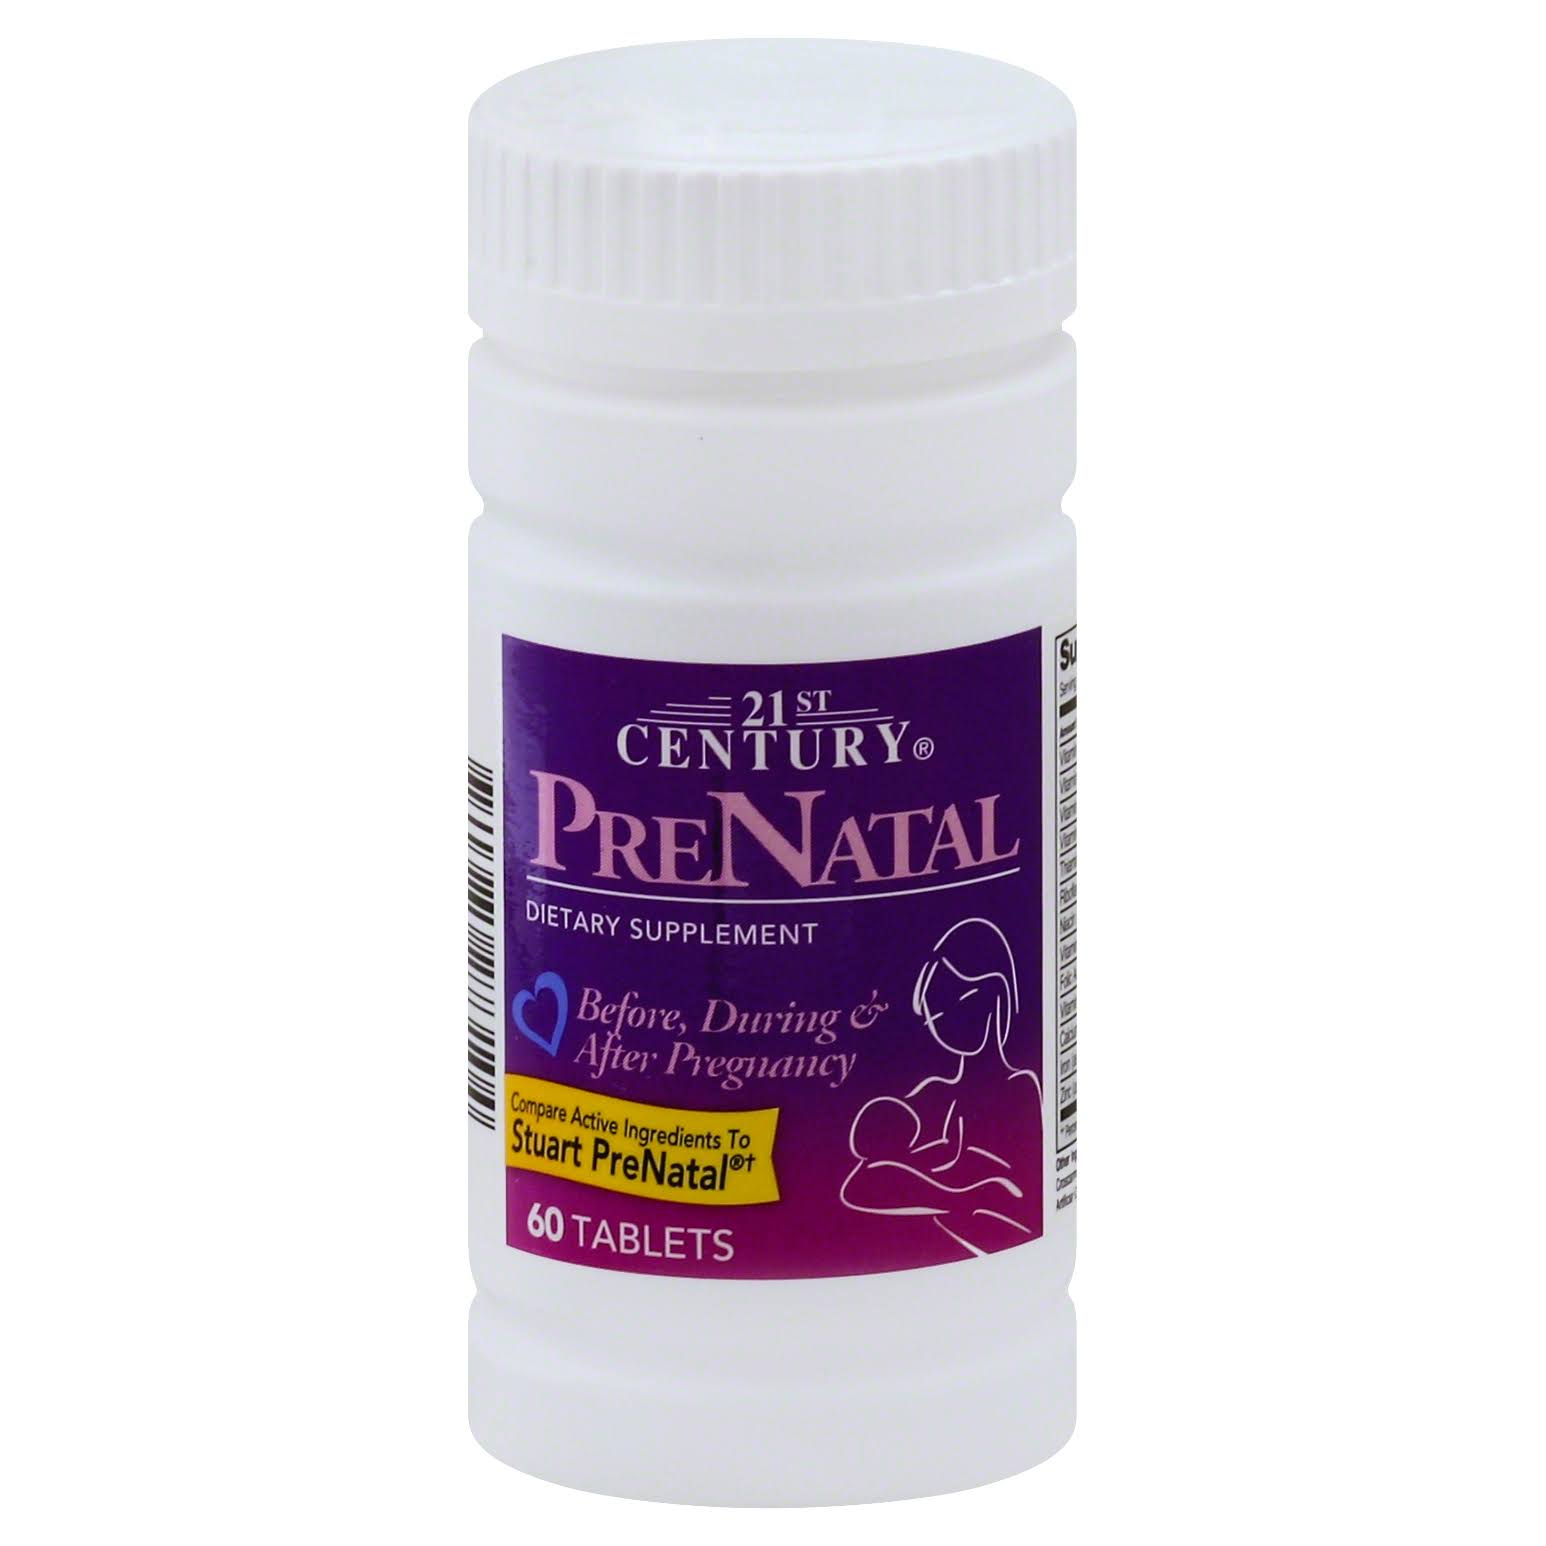 21st Century Prenatal Dietary Supplement - 60 Tablets